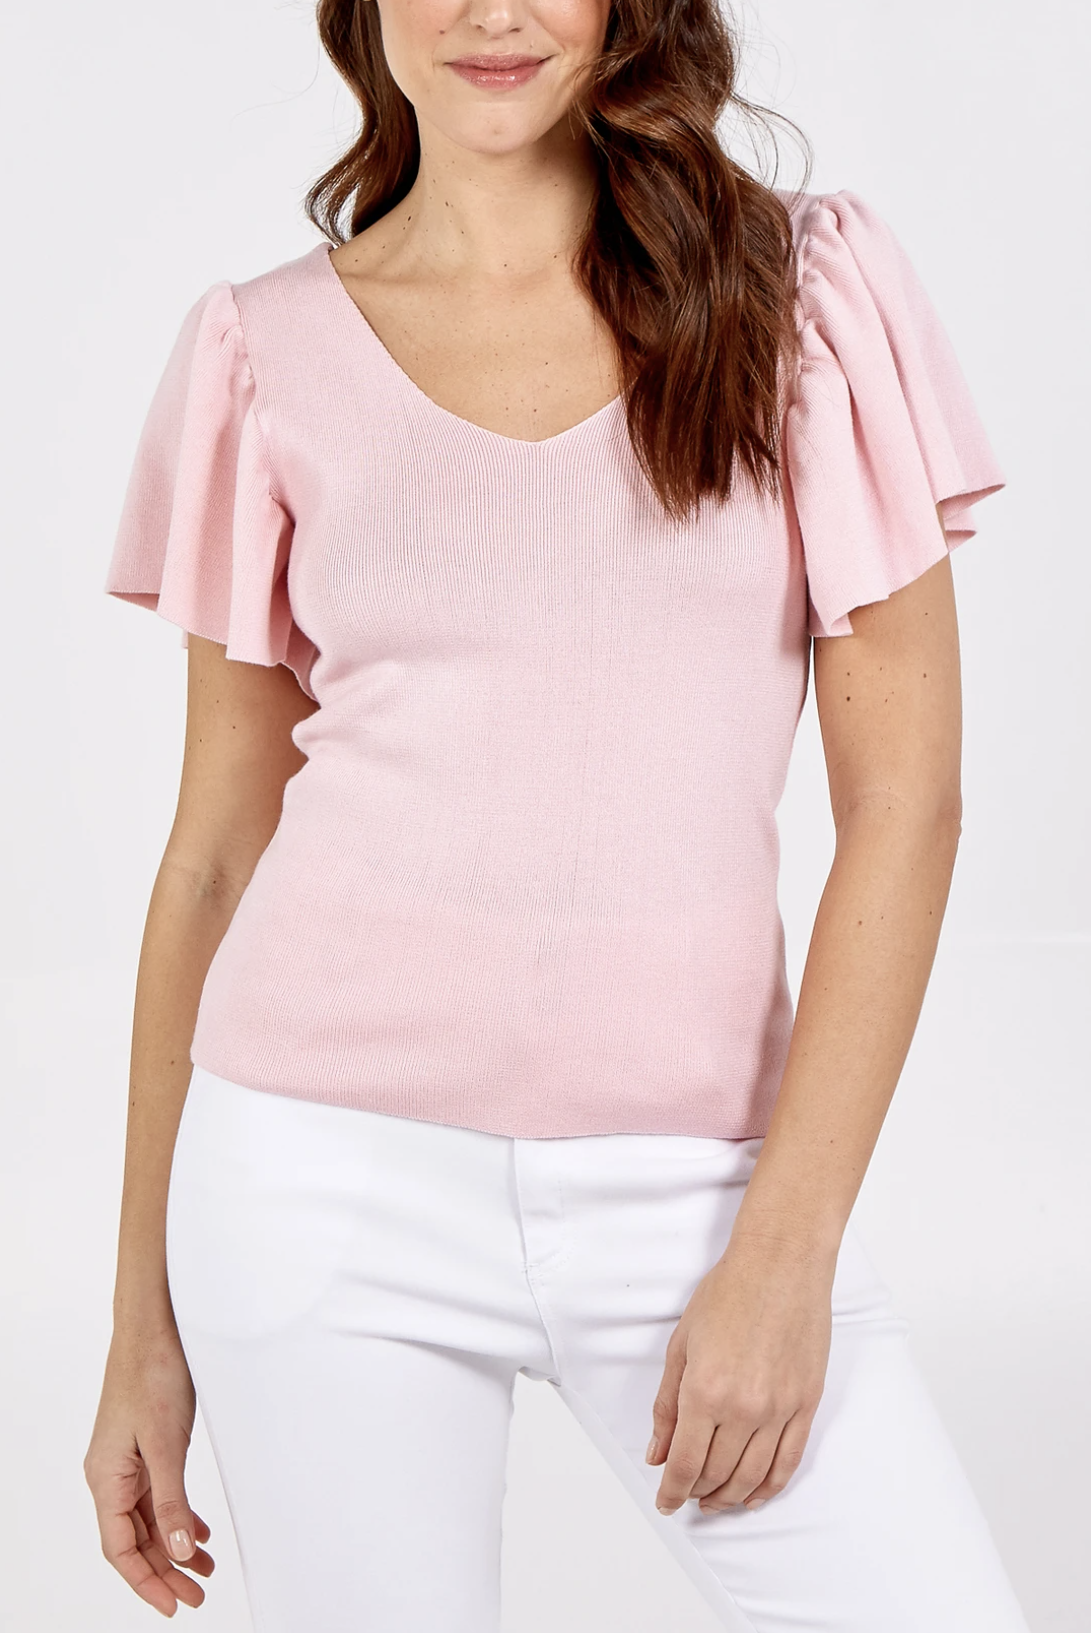 QED1467 V-Neck Ribbed Top With Flared Sleeves